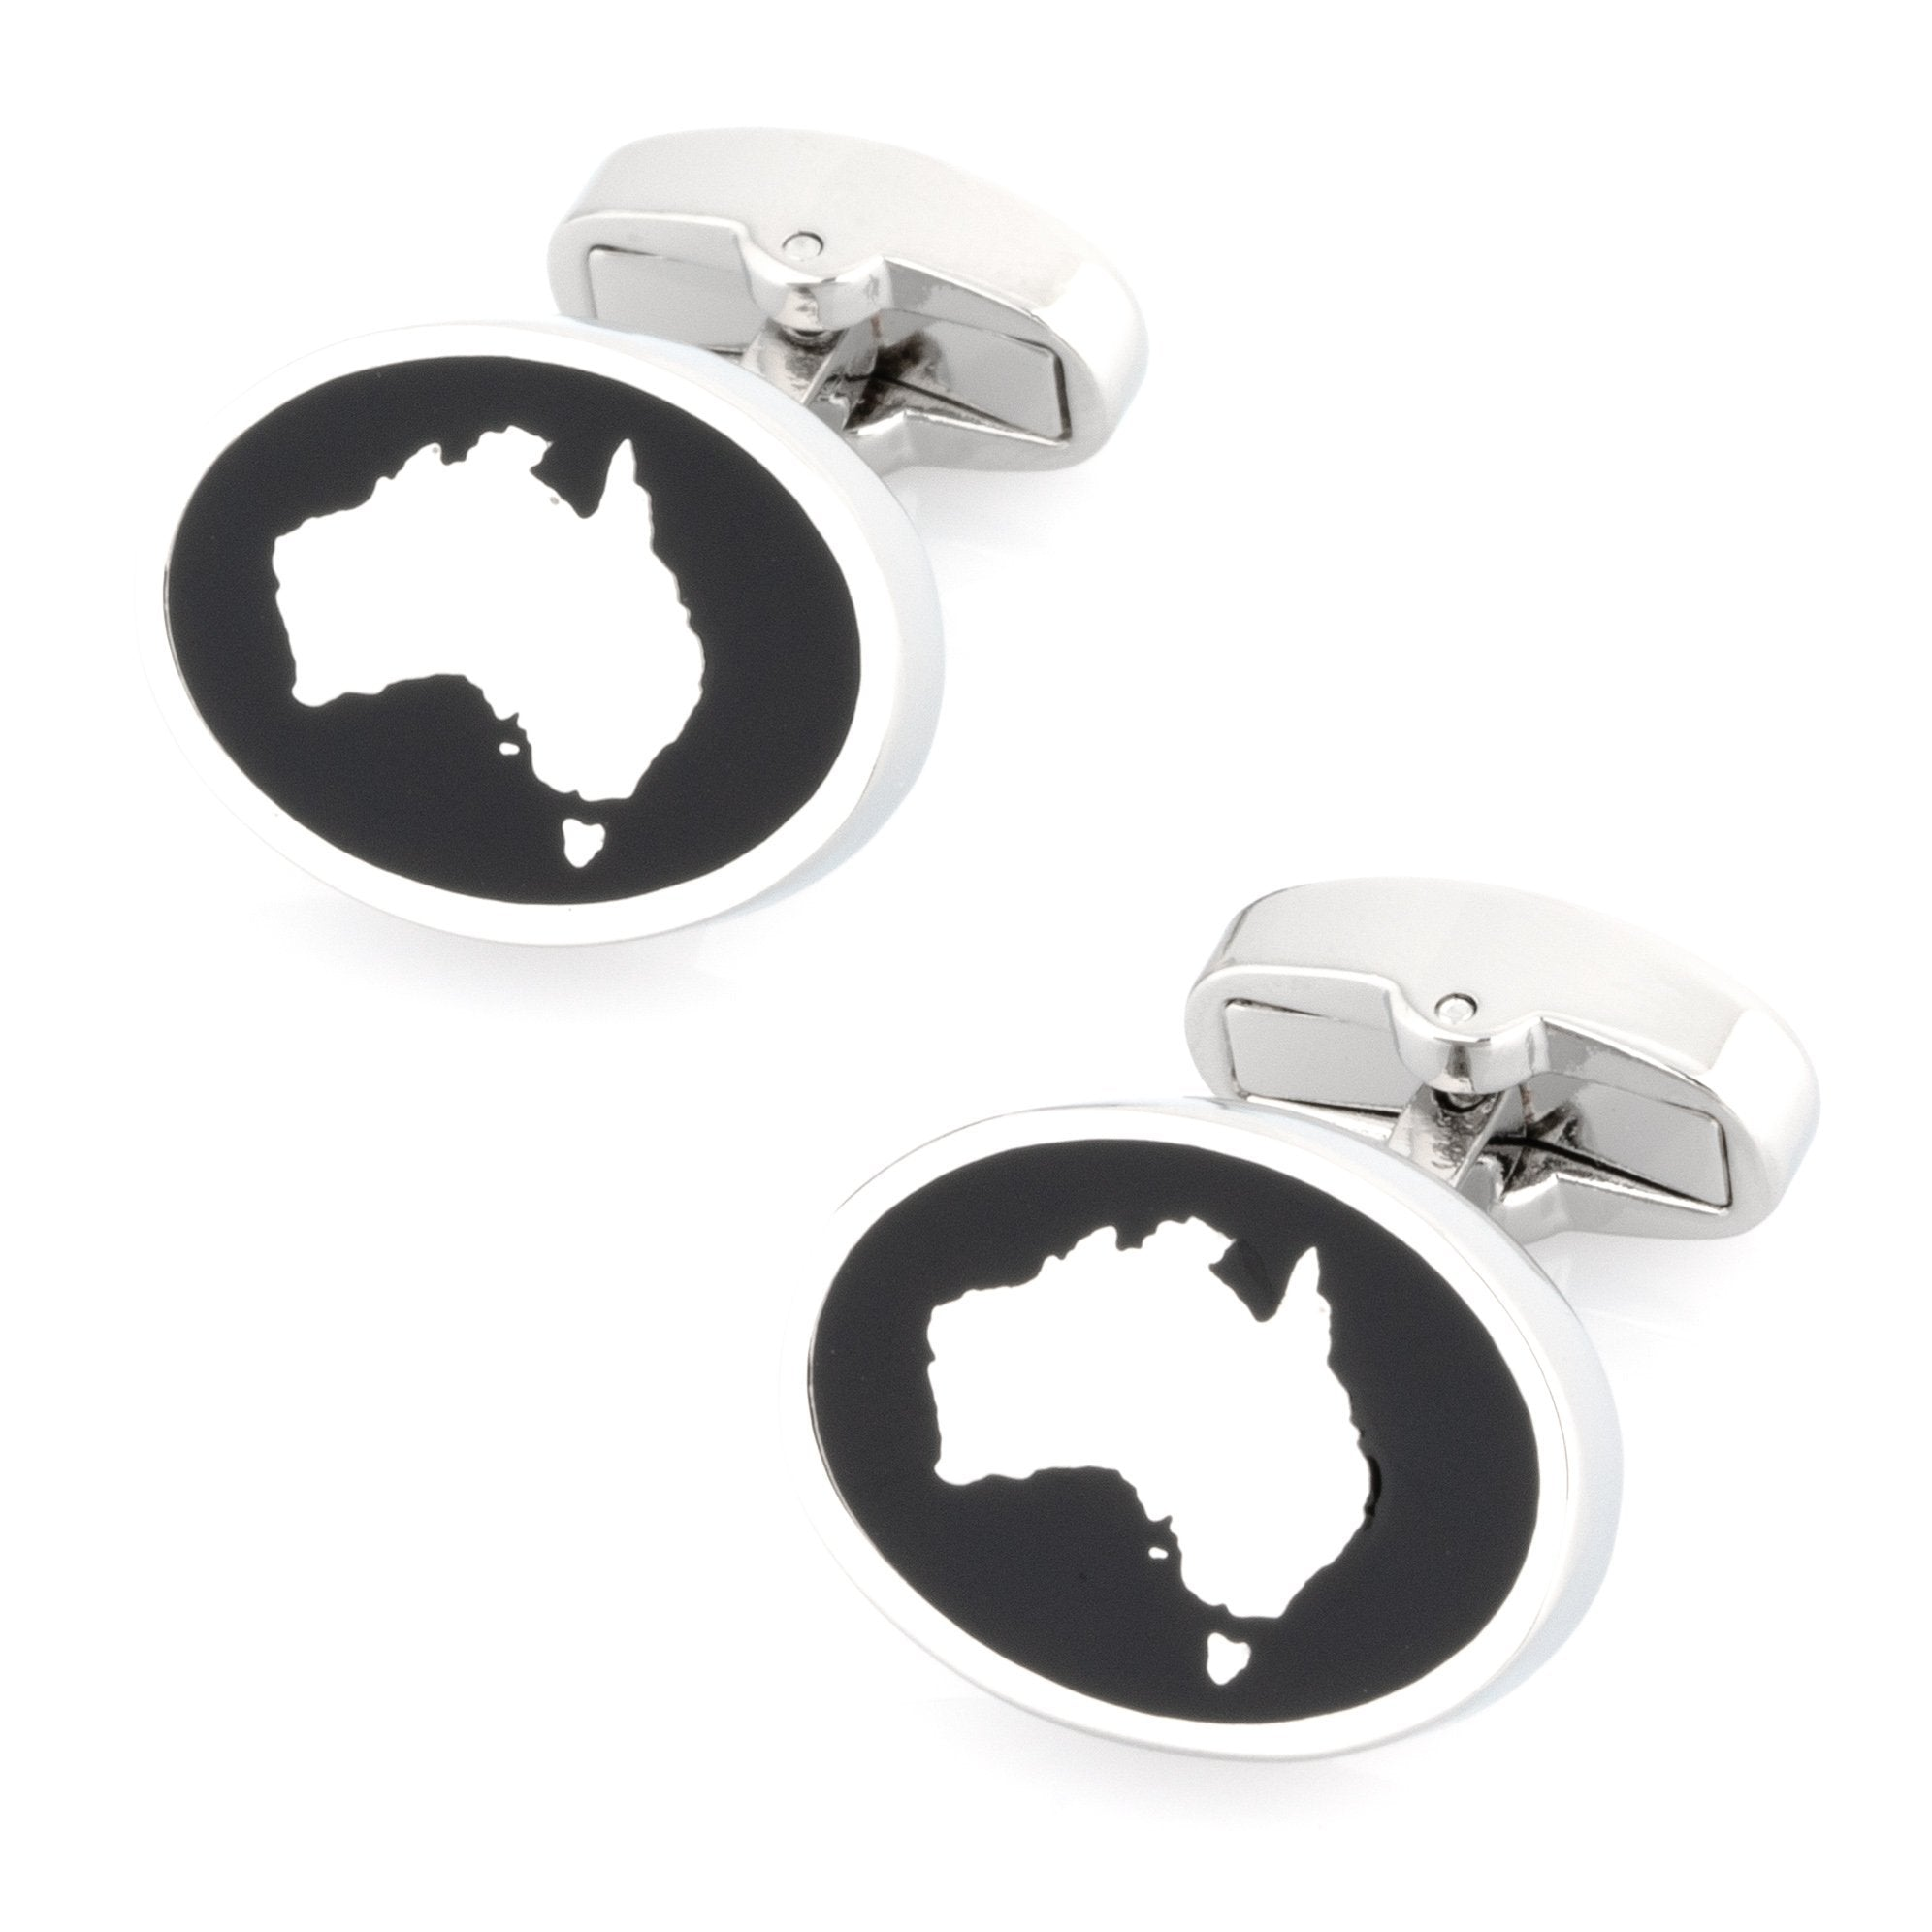 Map of Australia SIlver on Black Enamel Cufflinks Novelty Cufflinks Clinks Australia